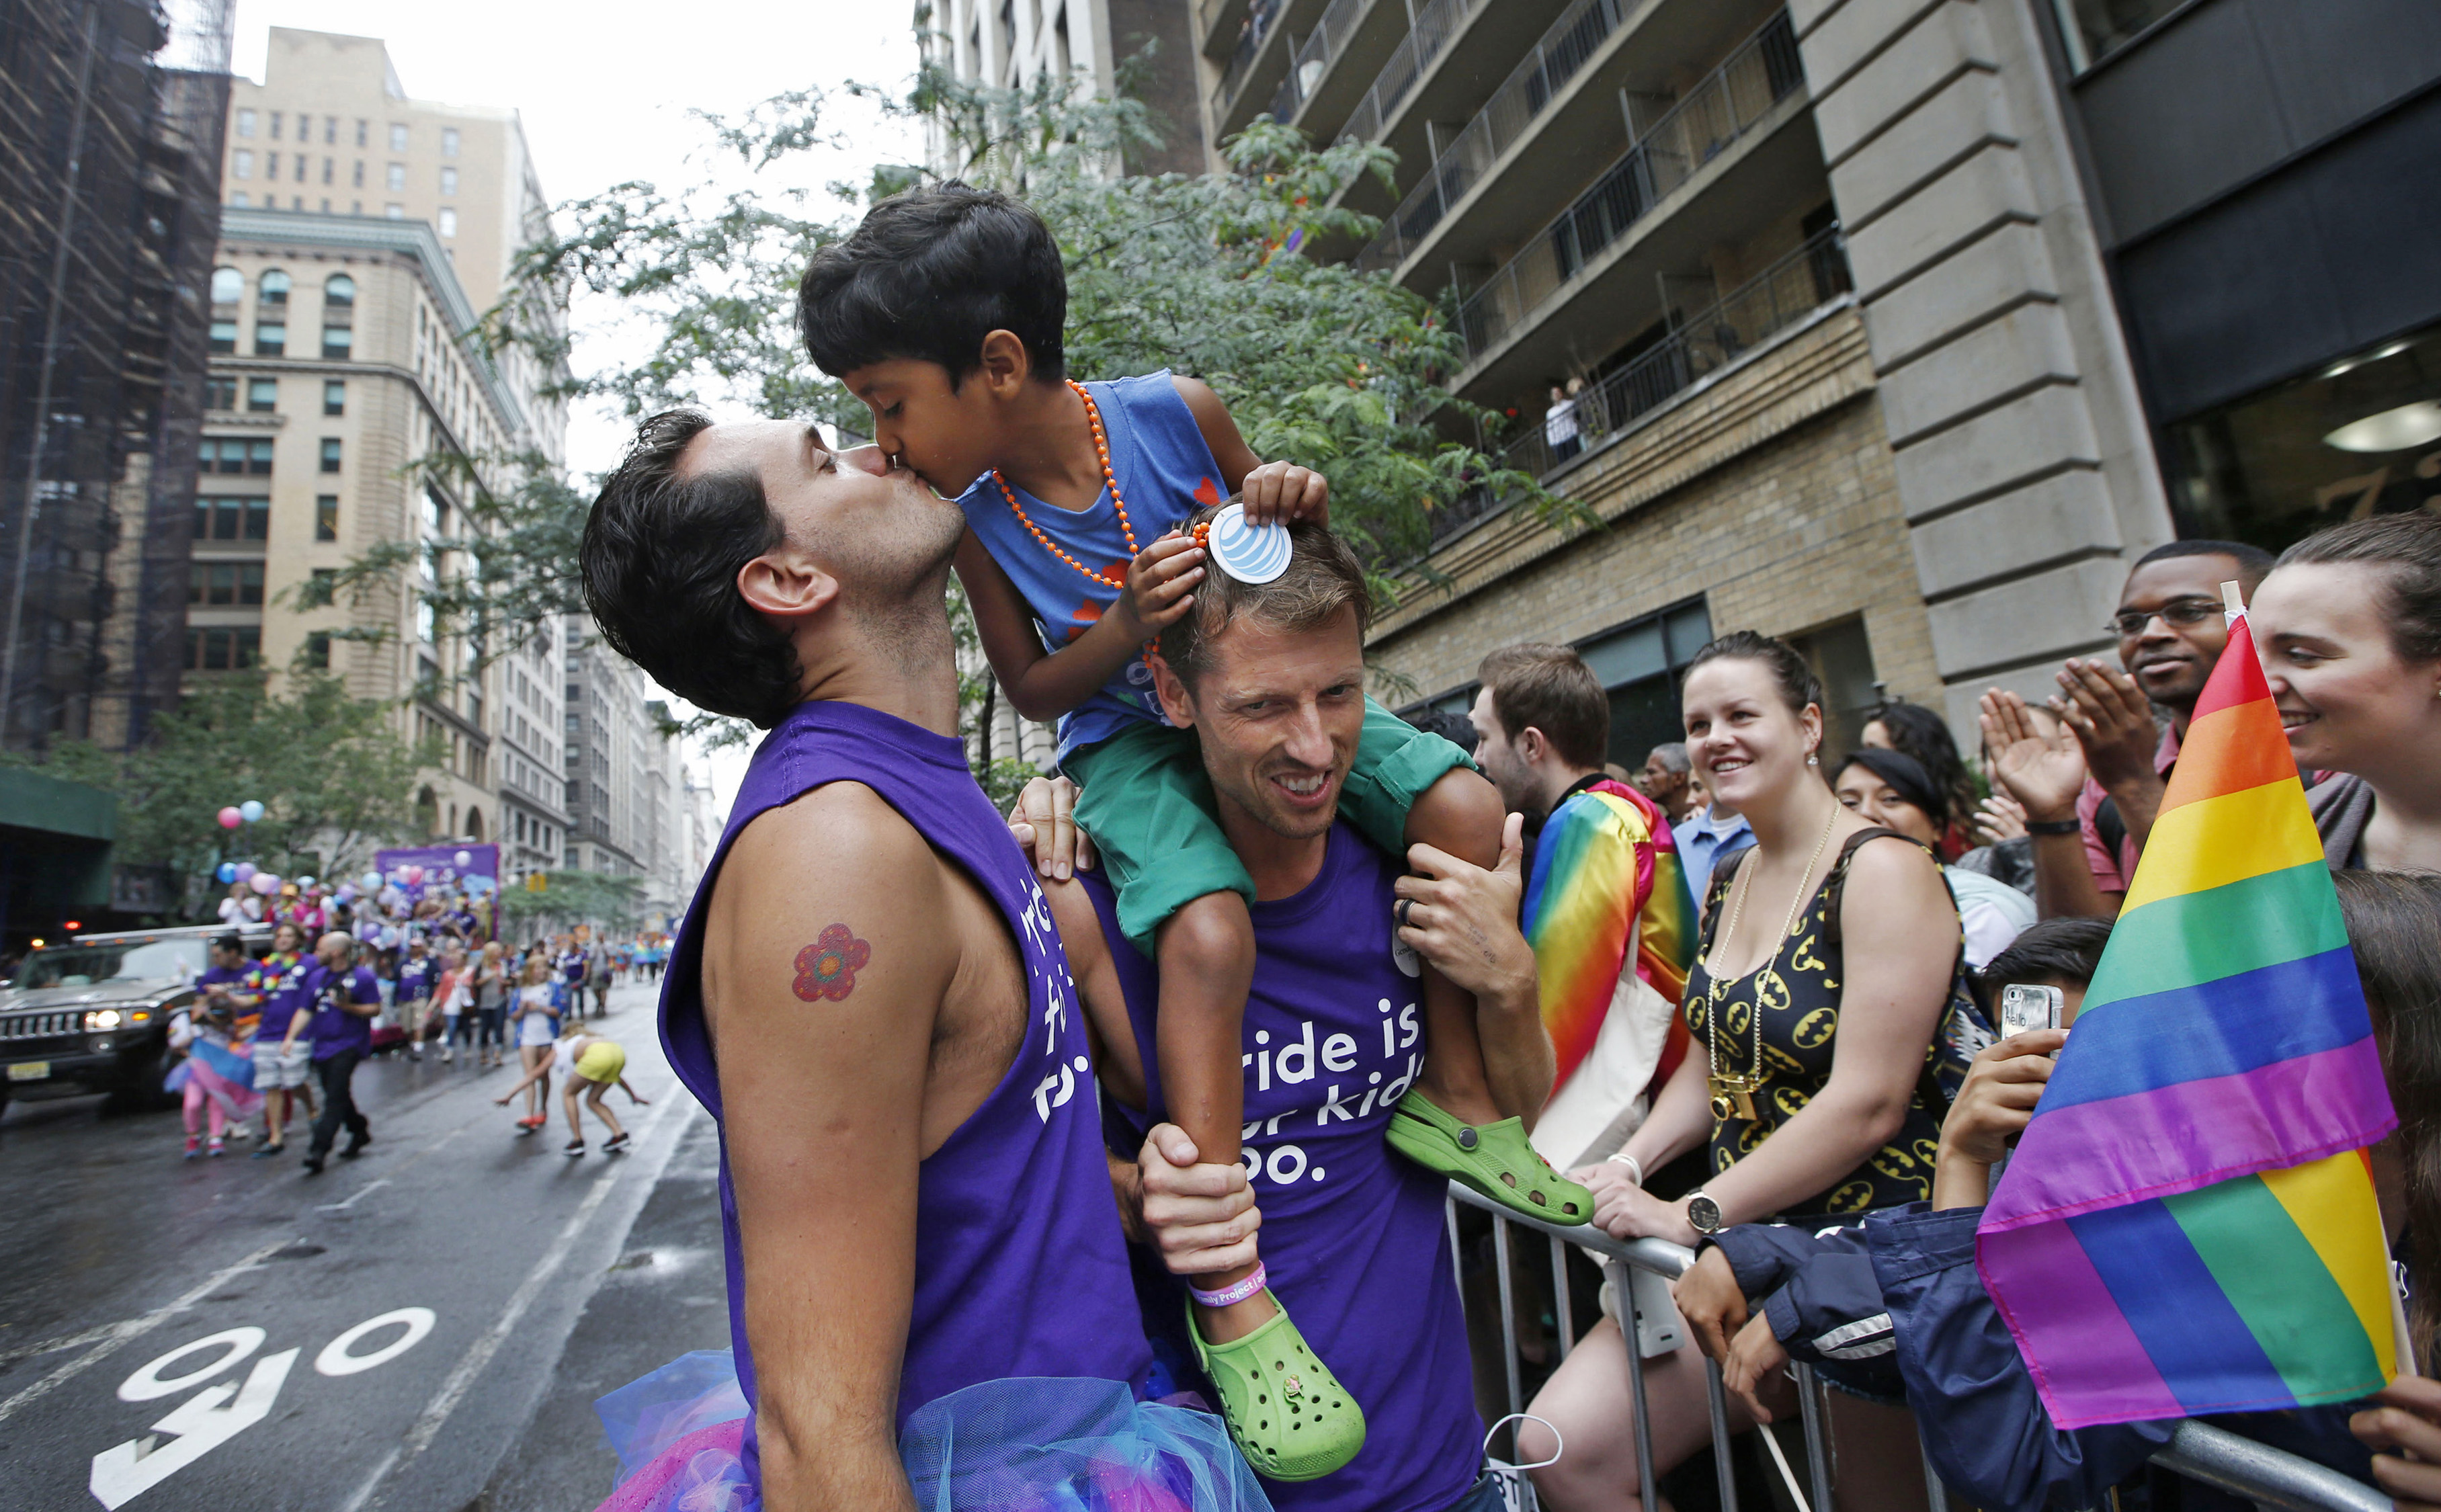 New york city looks to repeal gay conversion therapy ban